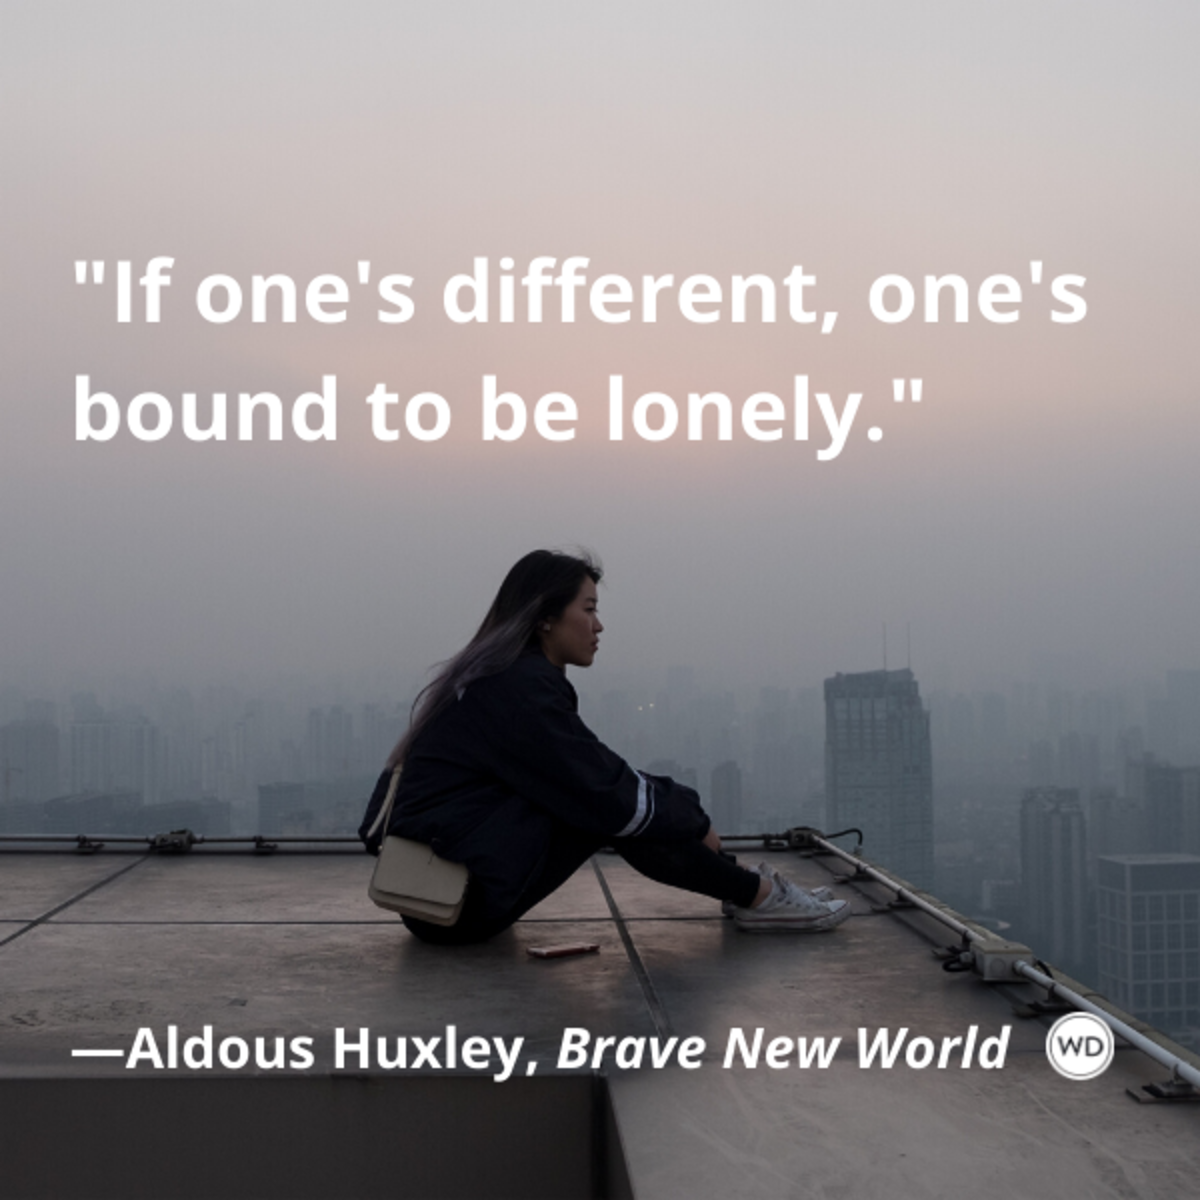 aldous_huxley_brave_new_world_quotes_if_ones_different_ones_bound_to_be_lonely